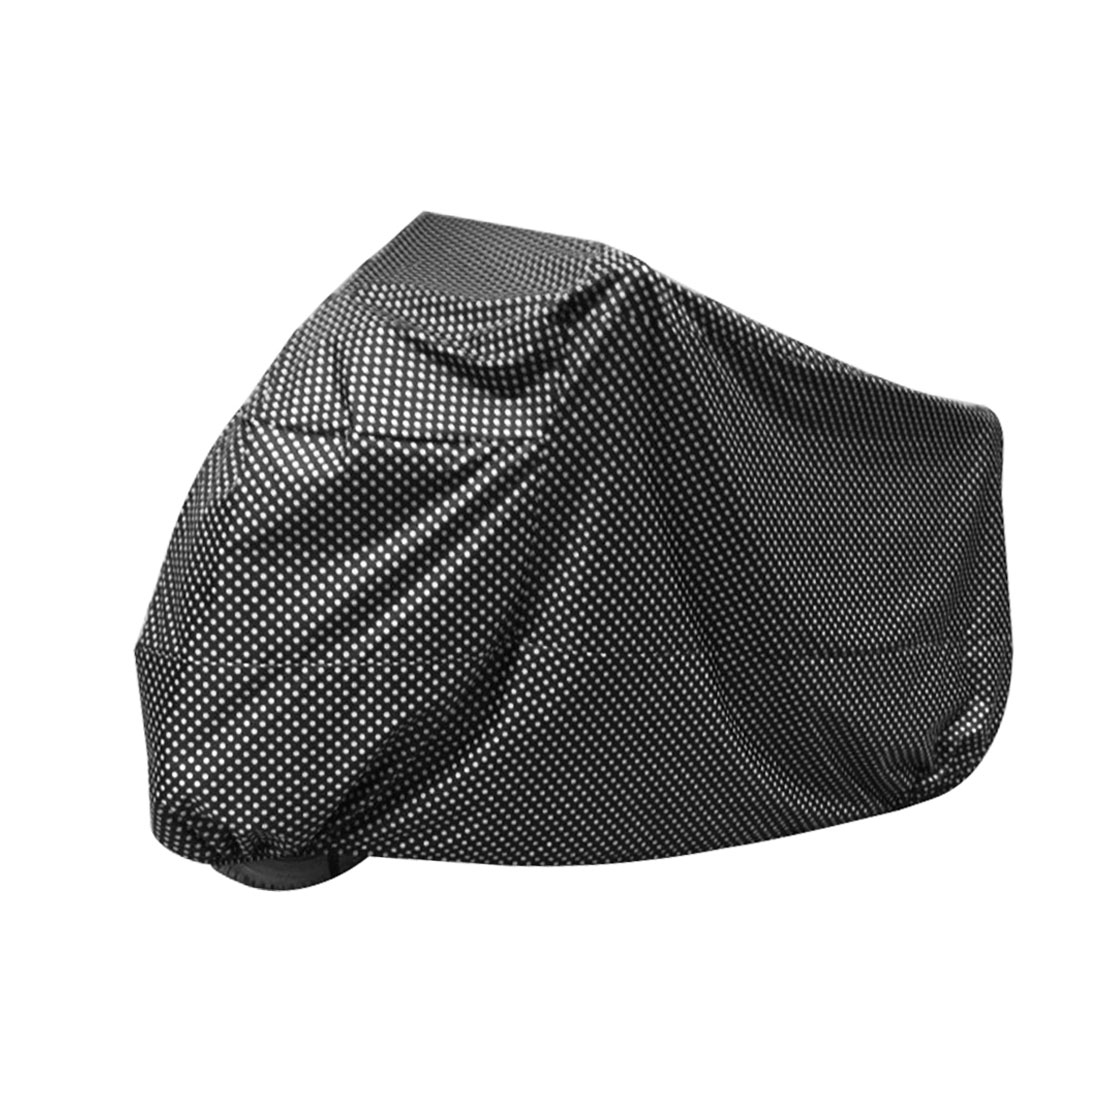 XL Black White Dots Motorcycle Waterproof Rain Dust Resistant Protective Cover